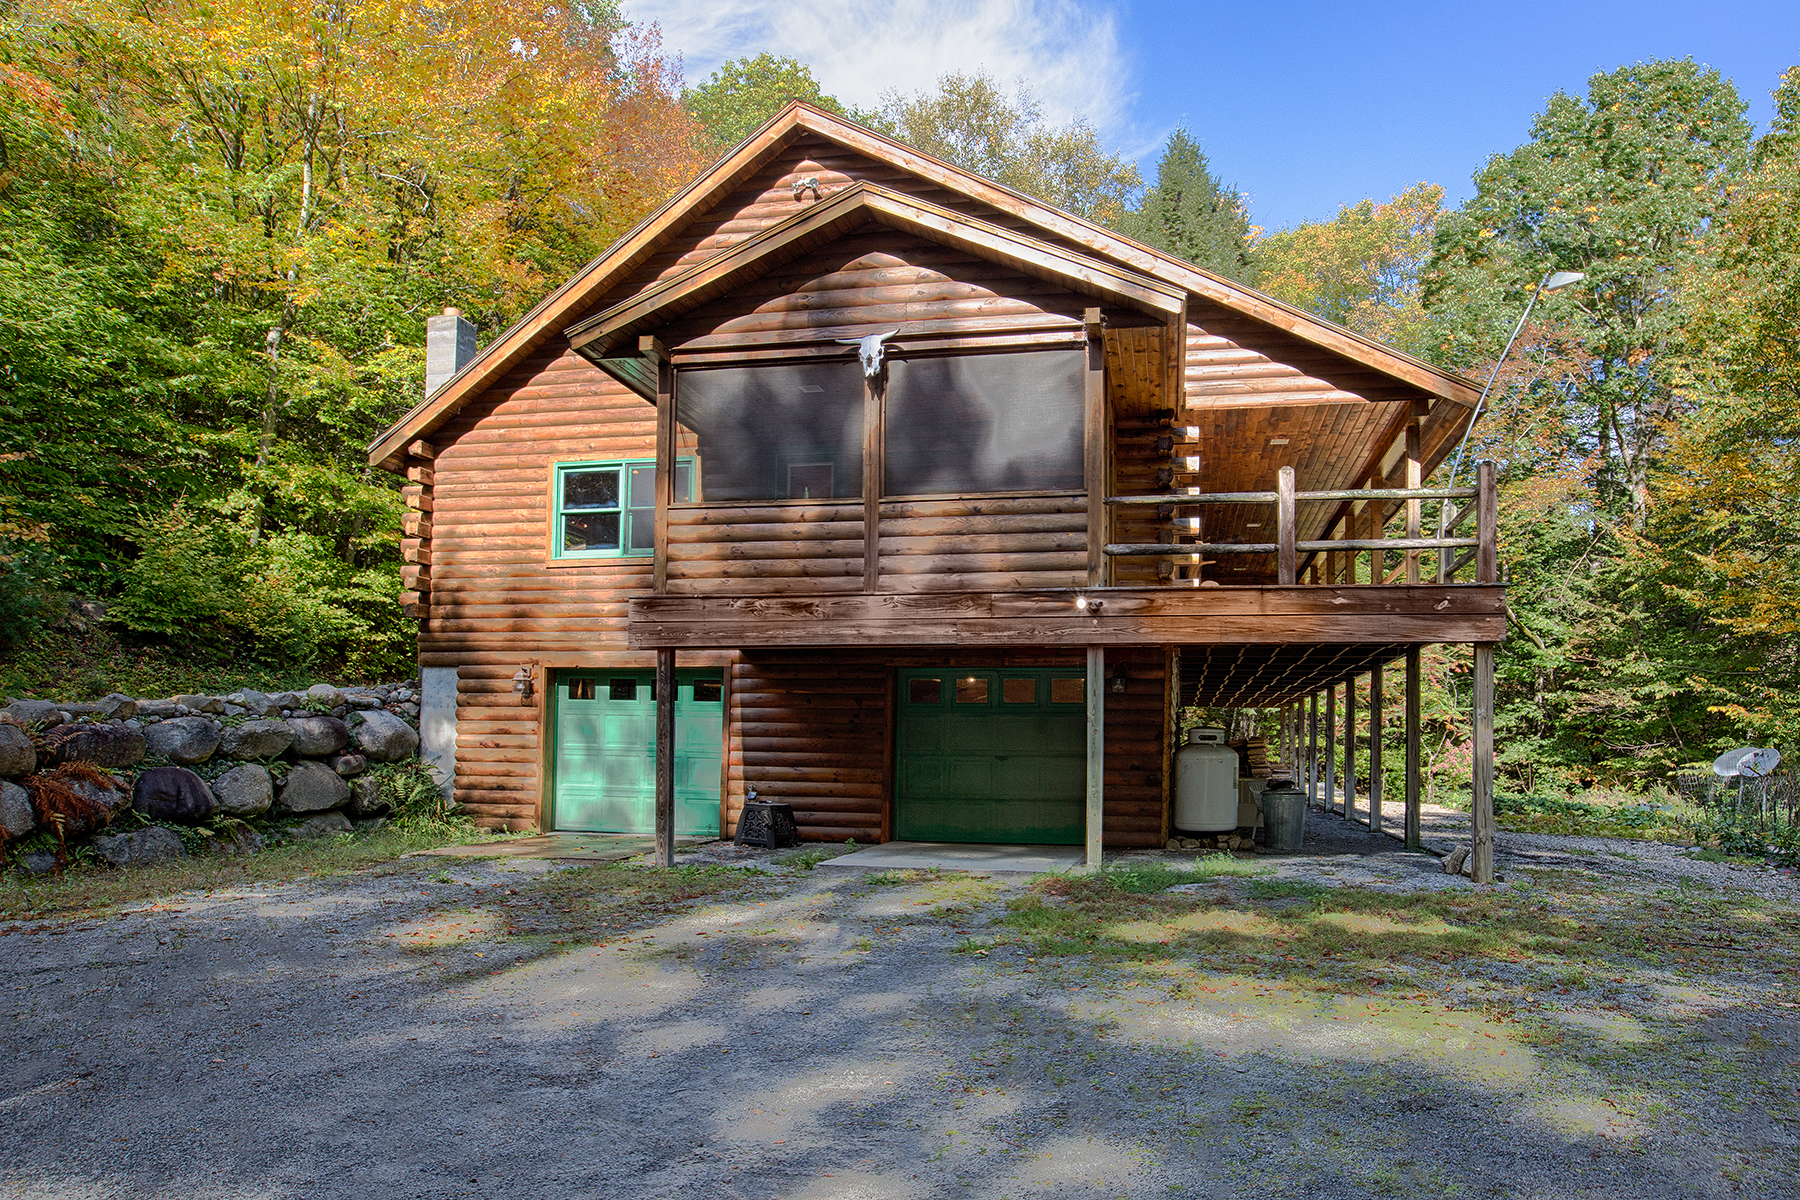 Single Family Homes for Active at Luxury Log Wilderness Retreat 213 Dippikill Rd Warrensburg, New York 12885 United States